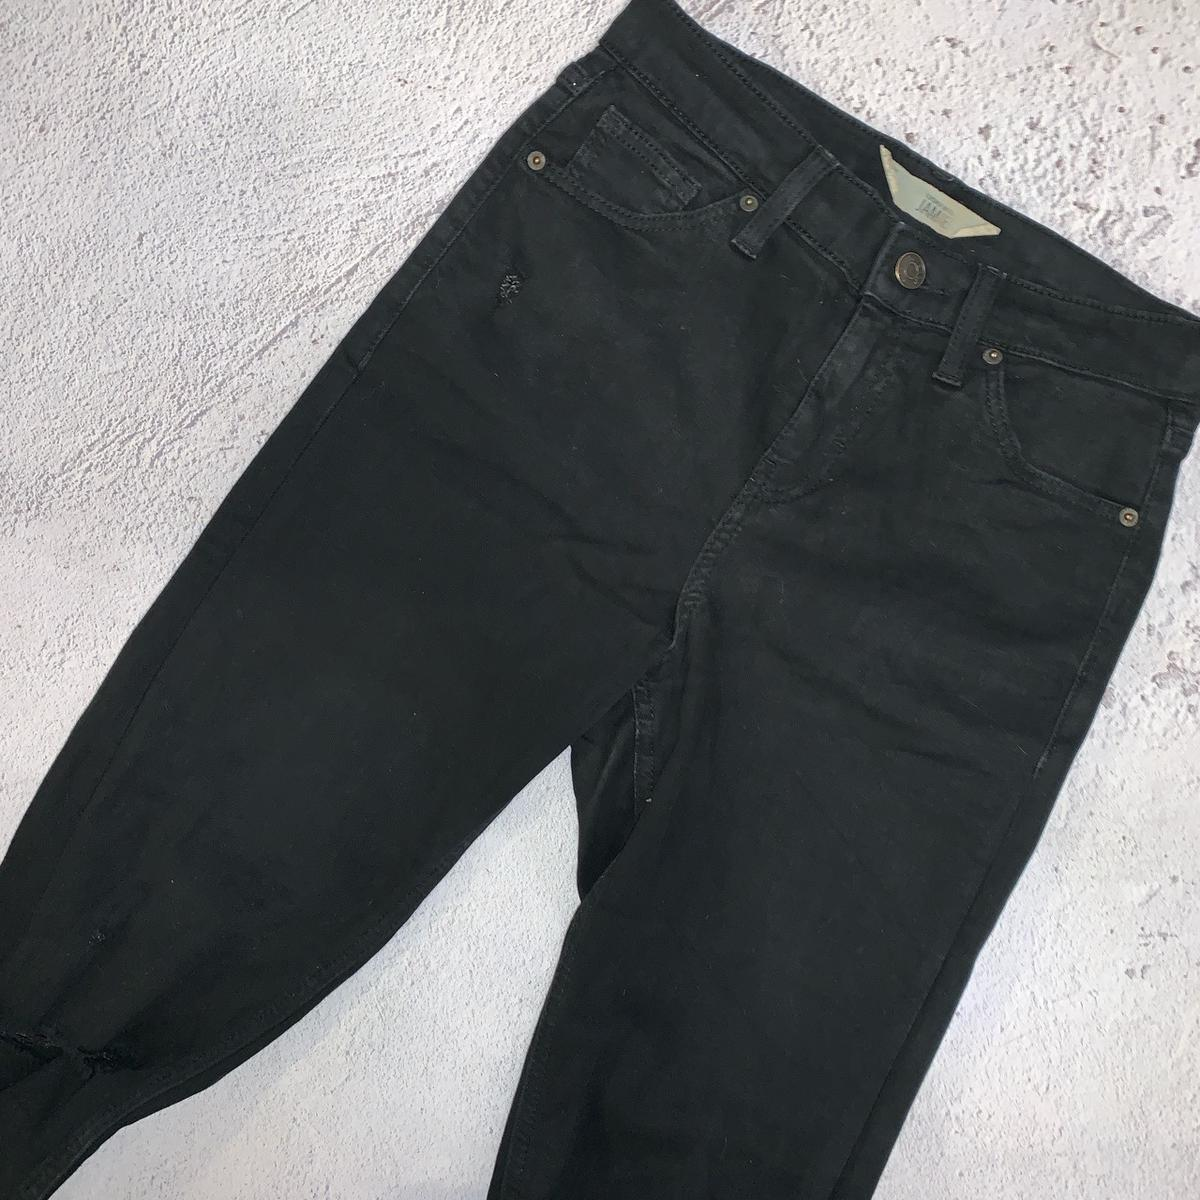 Topshop Jamie Jeans Skinny Stretch High Waisted W26 L30 Some wash wear Ripped knees